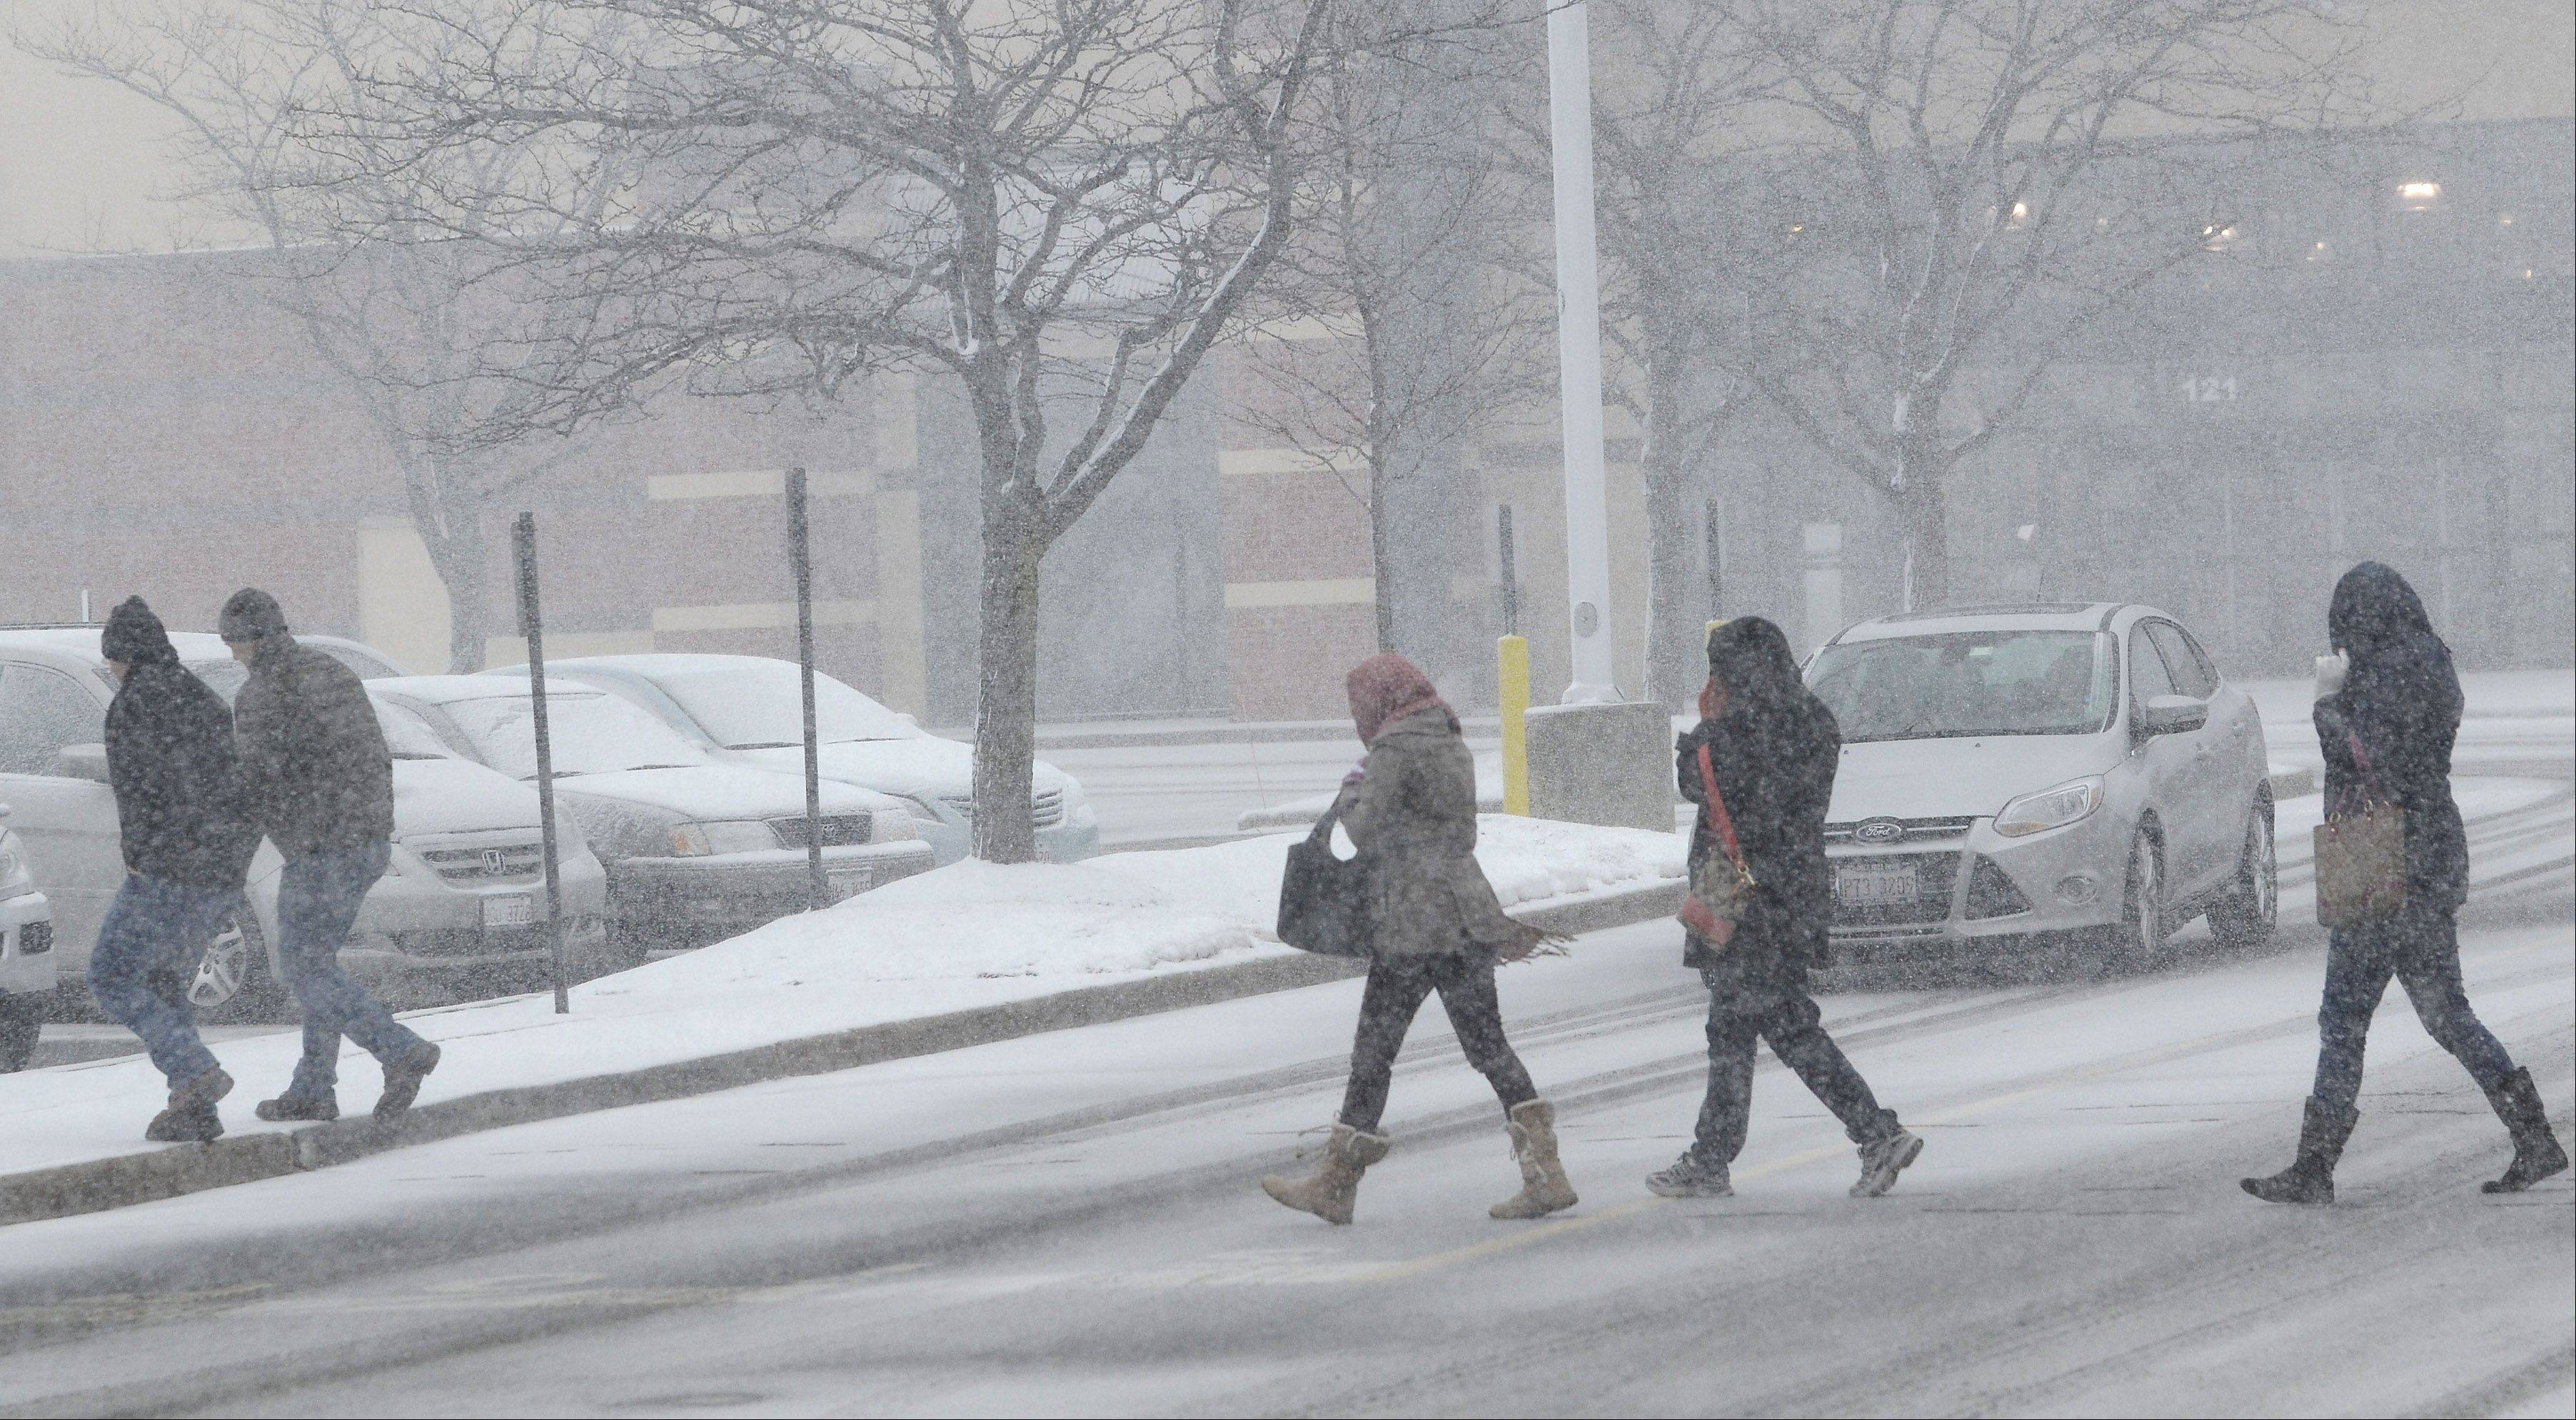 People brave the blizzard-like conditions in Vernon Hills as the latest snowstorm hits Tuesday afternoon.